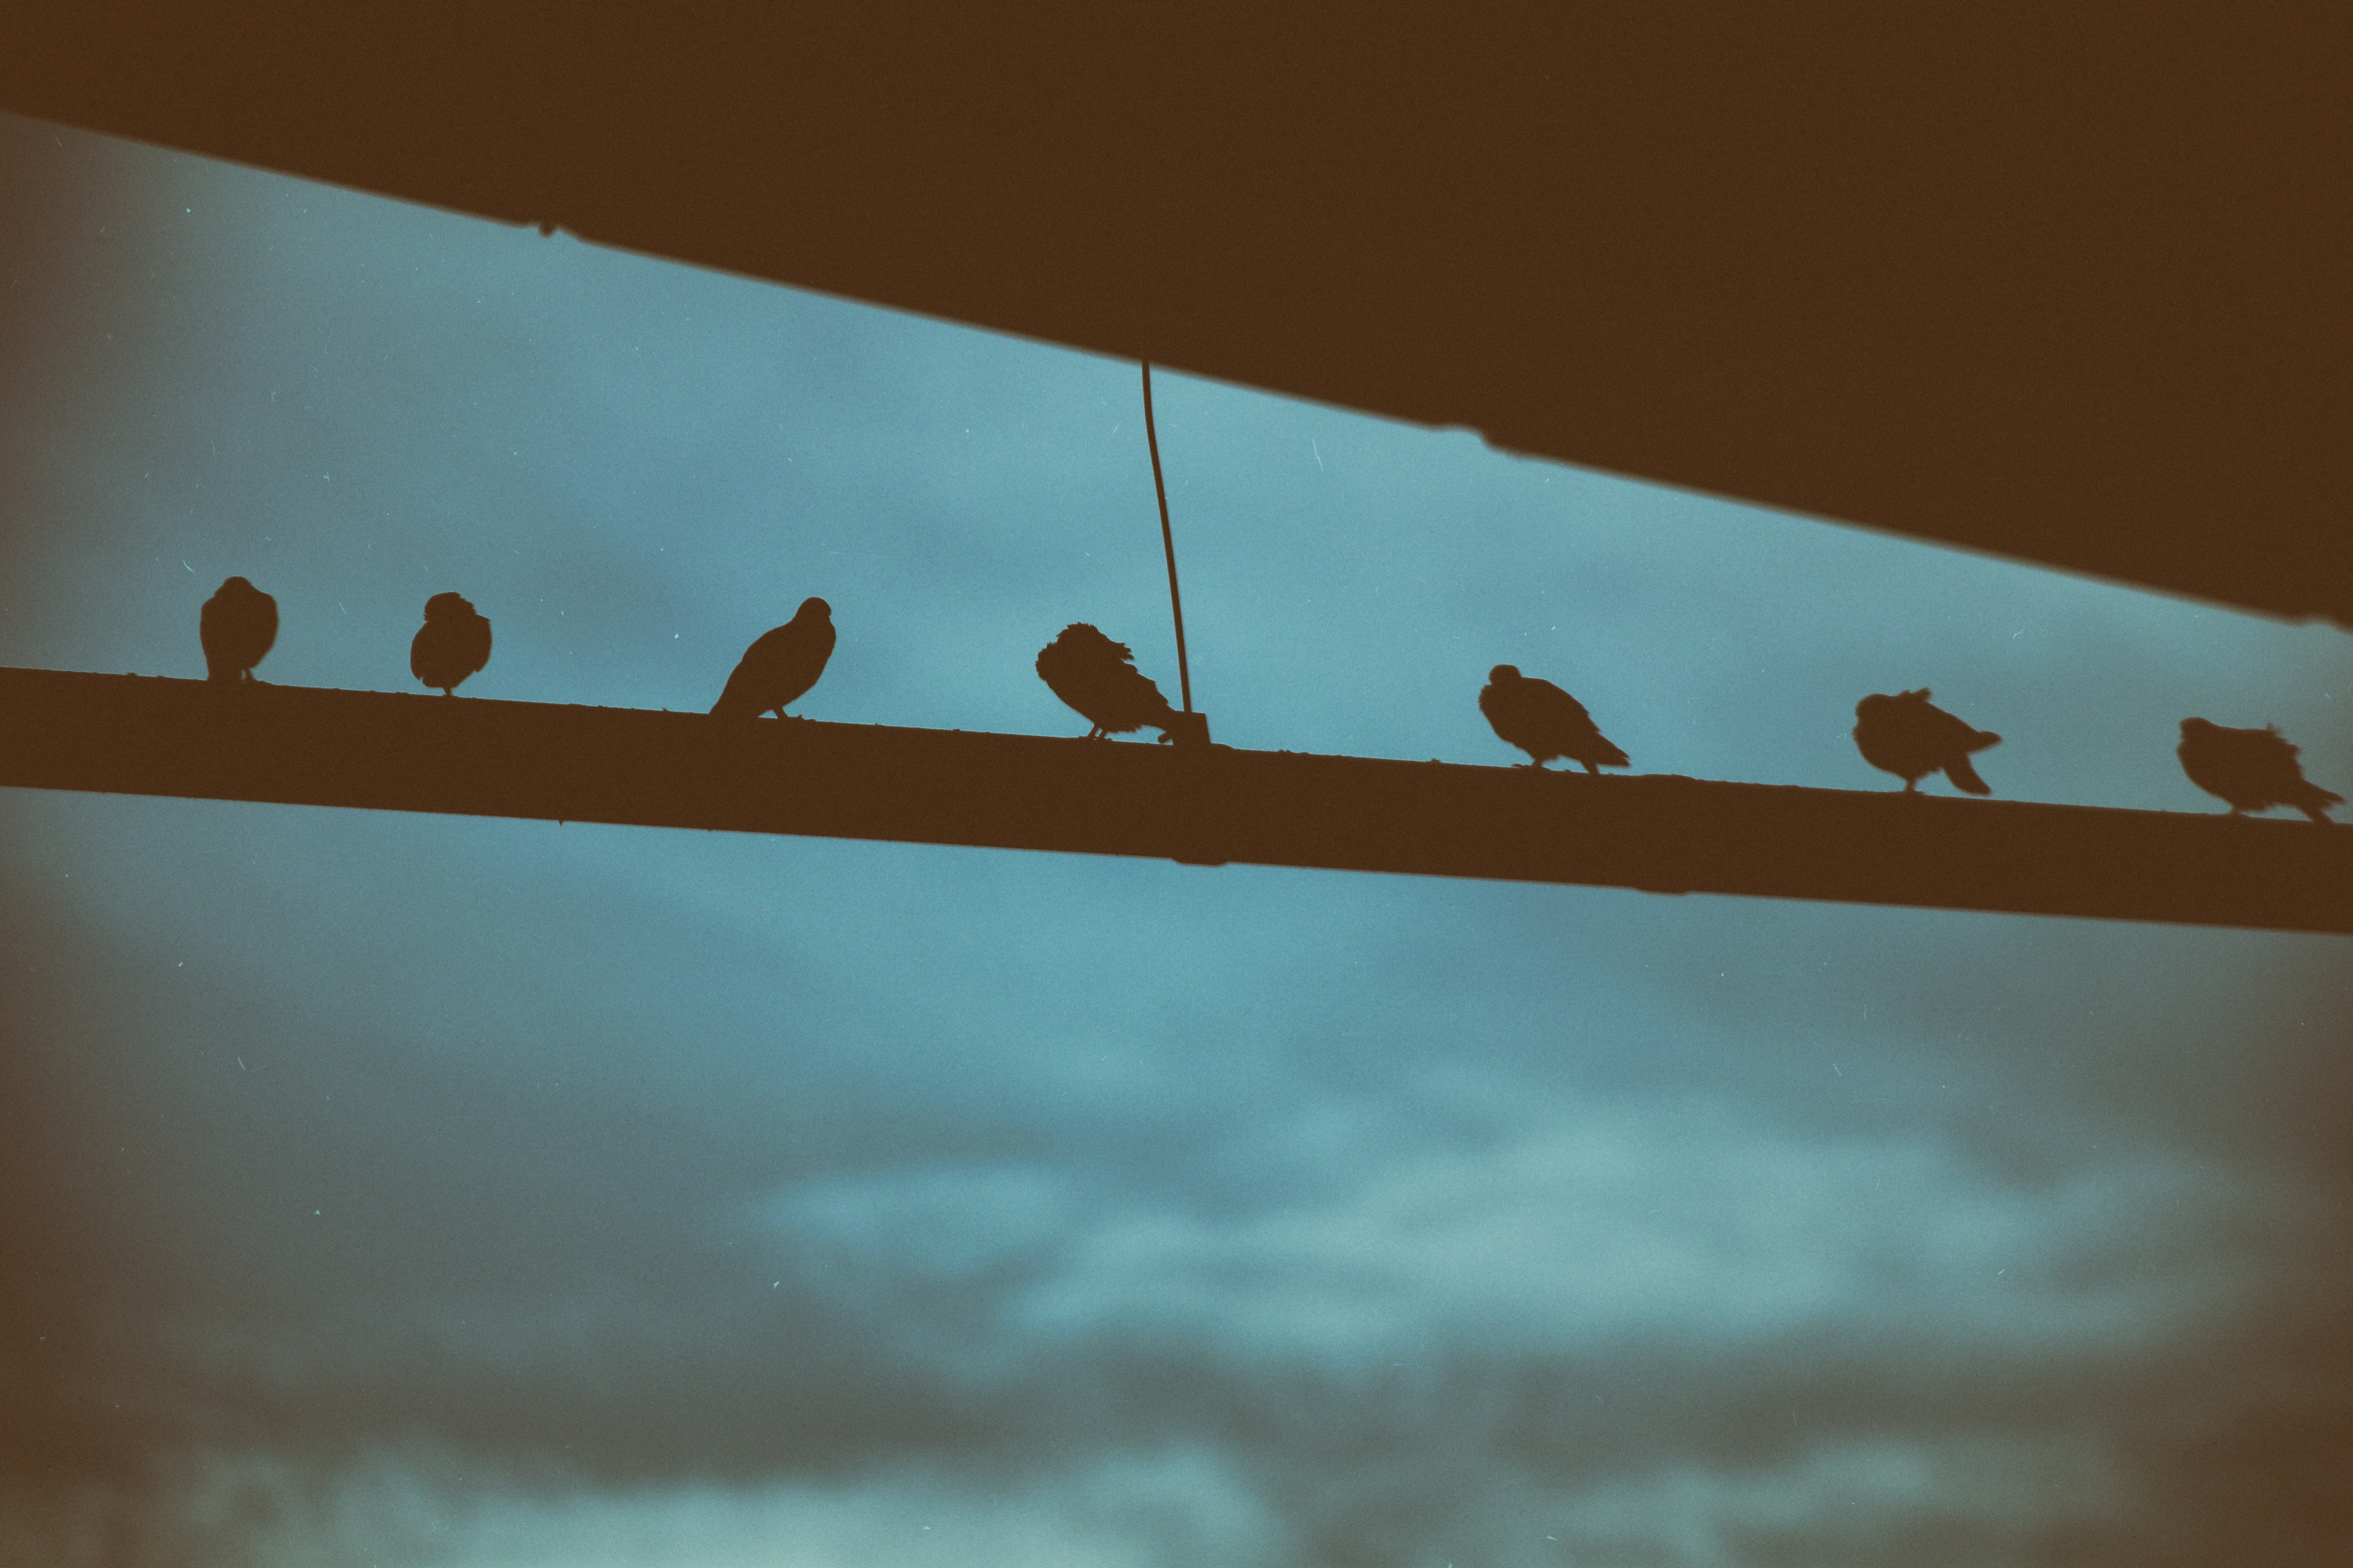 group of birds sitting together in a line against a stormy backdrop